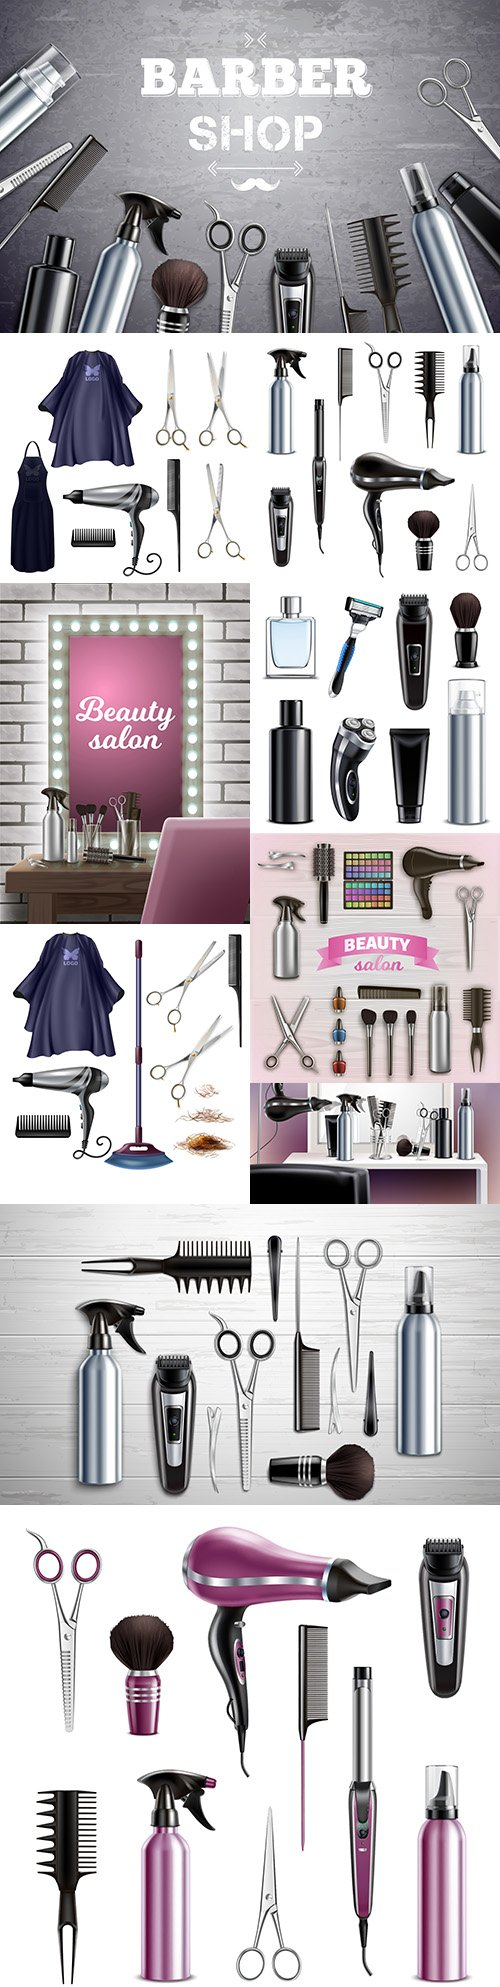 Hairdressing tools for hair styling and shaving realistic illustrations